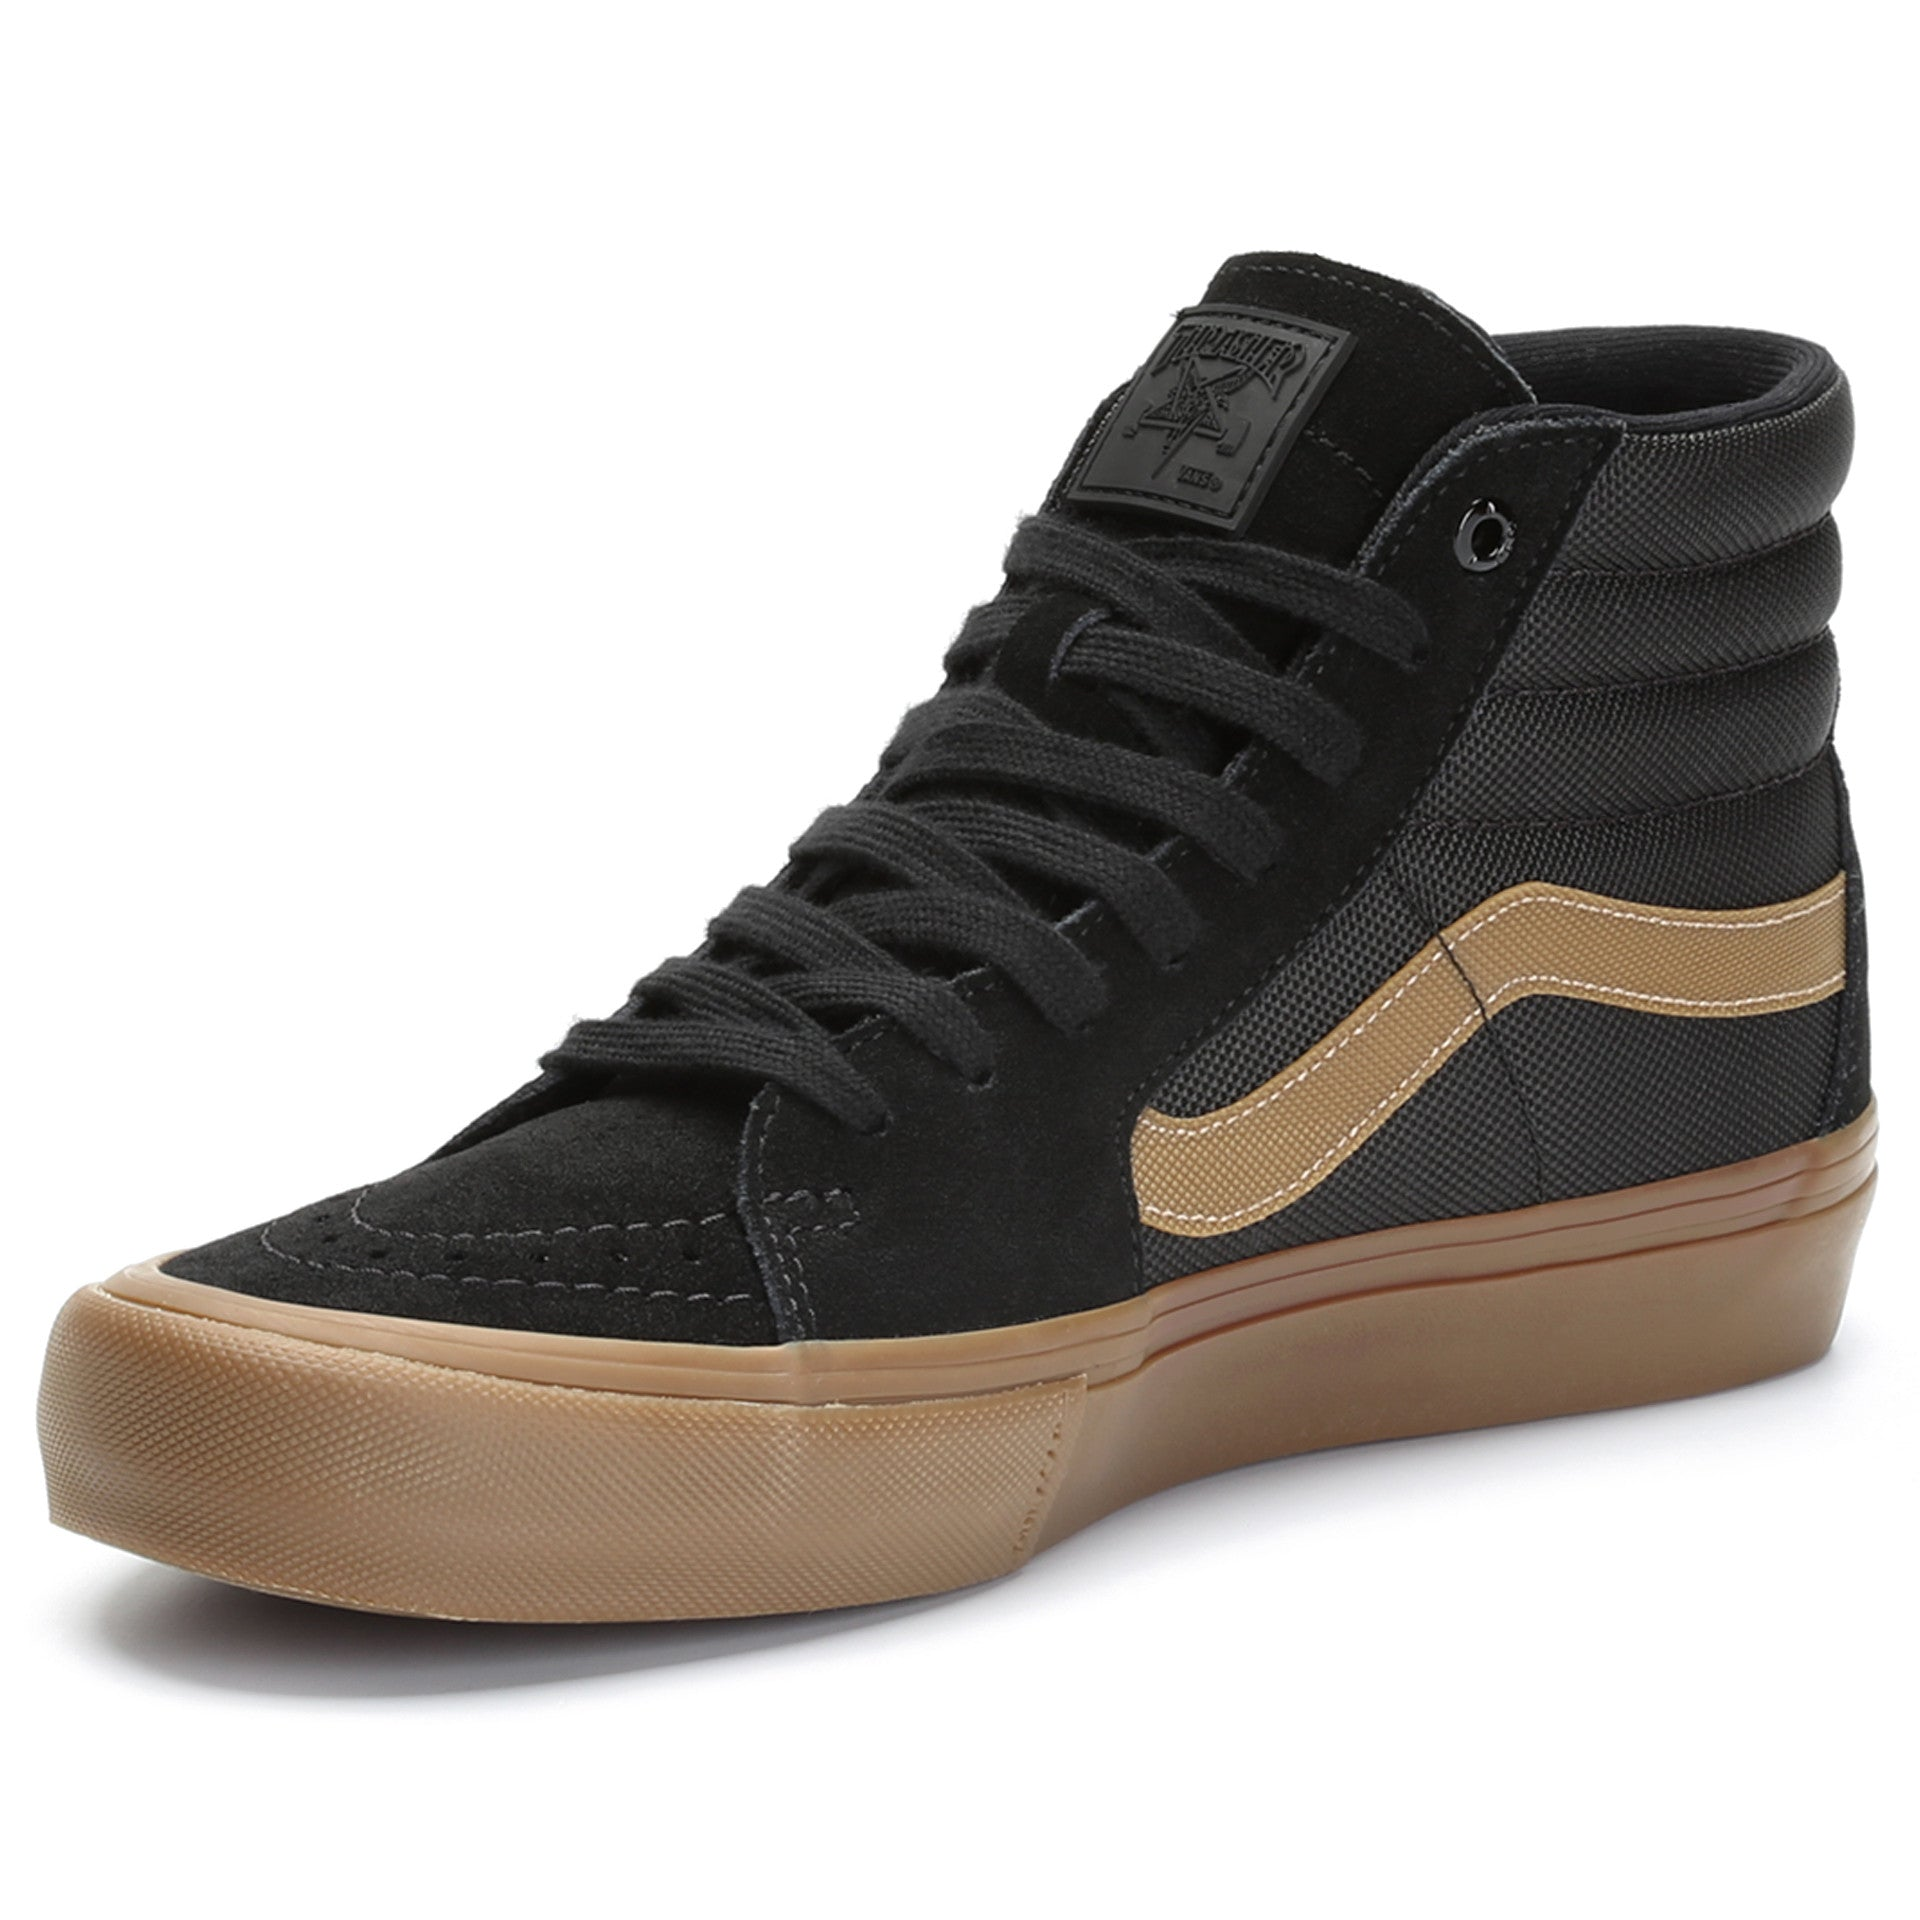 Vans x Thrasher Sk8 Hi - Black Gum - New Star 6d4303bbe